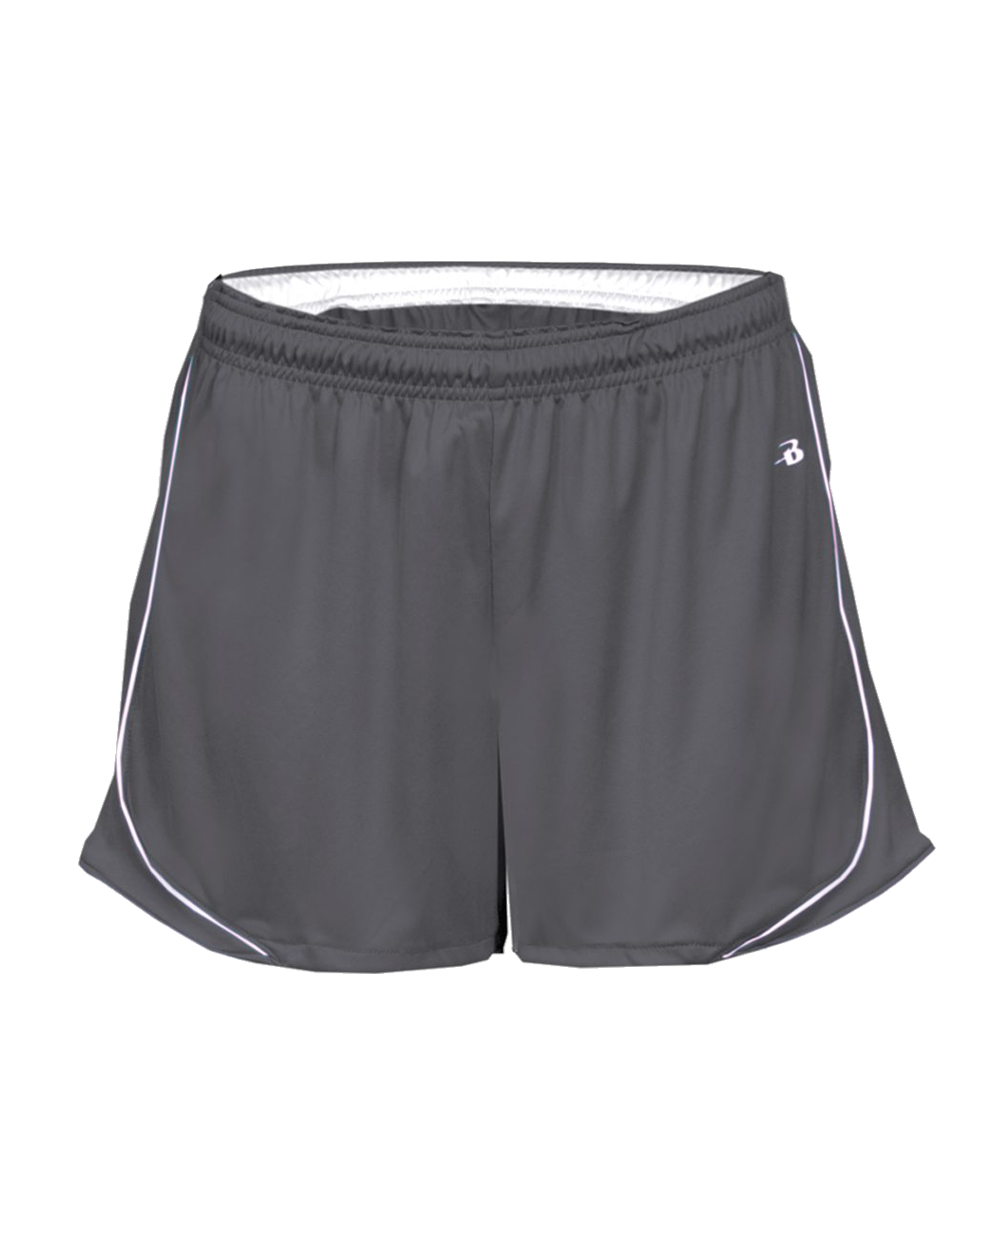 Pacer Women's Short - Graphite/White